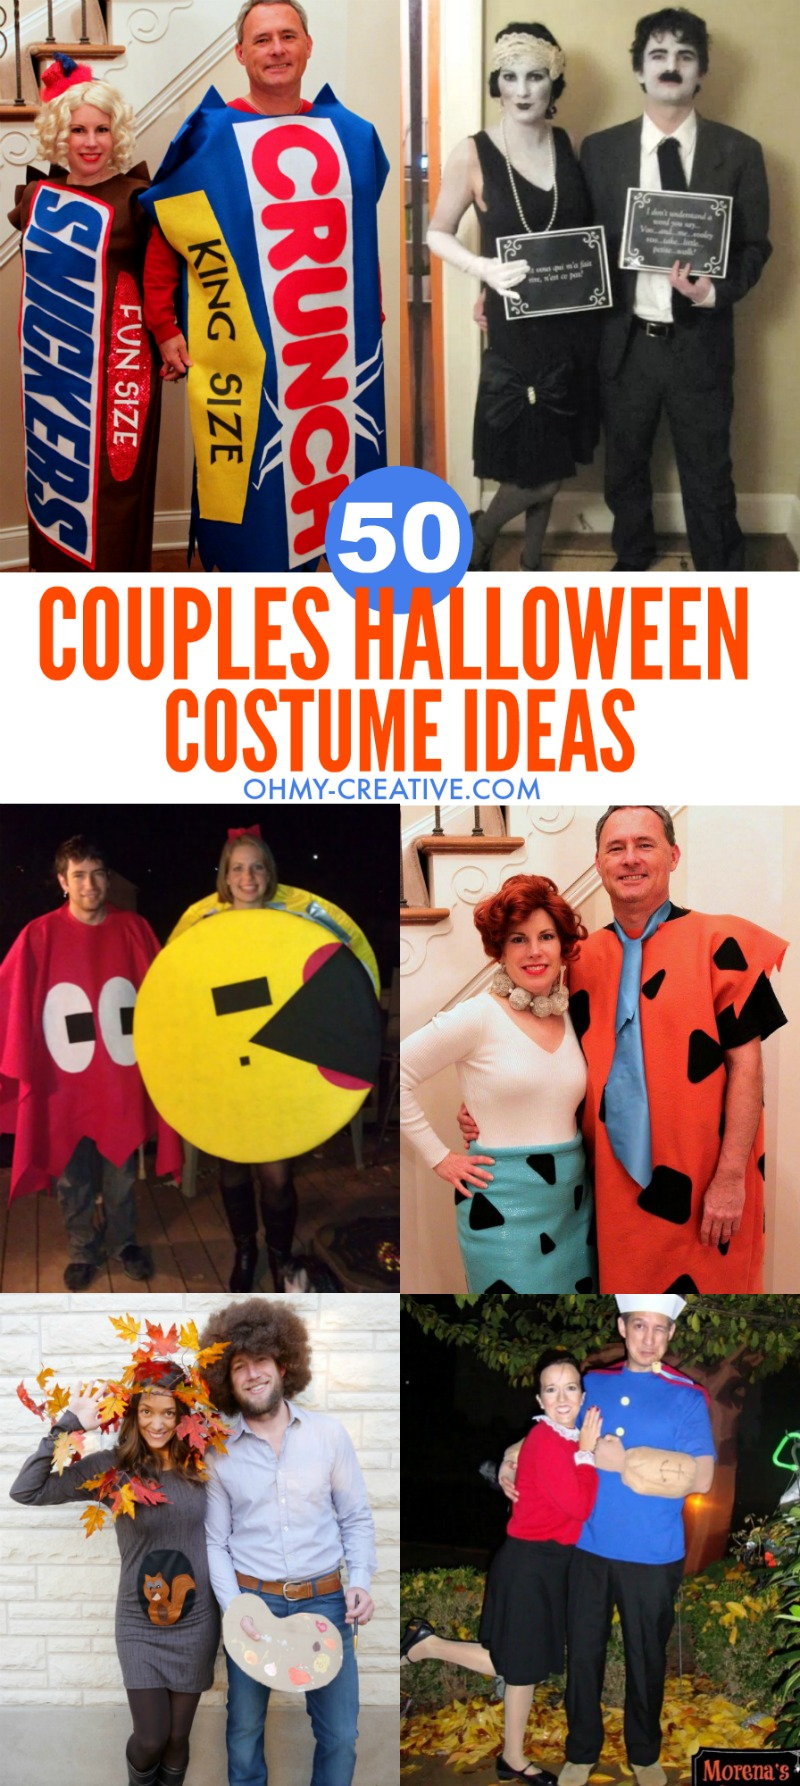 50 couples halloween costume ideas ohmy creativecom halloween costumes for couples